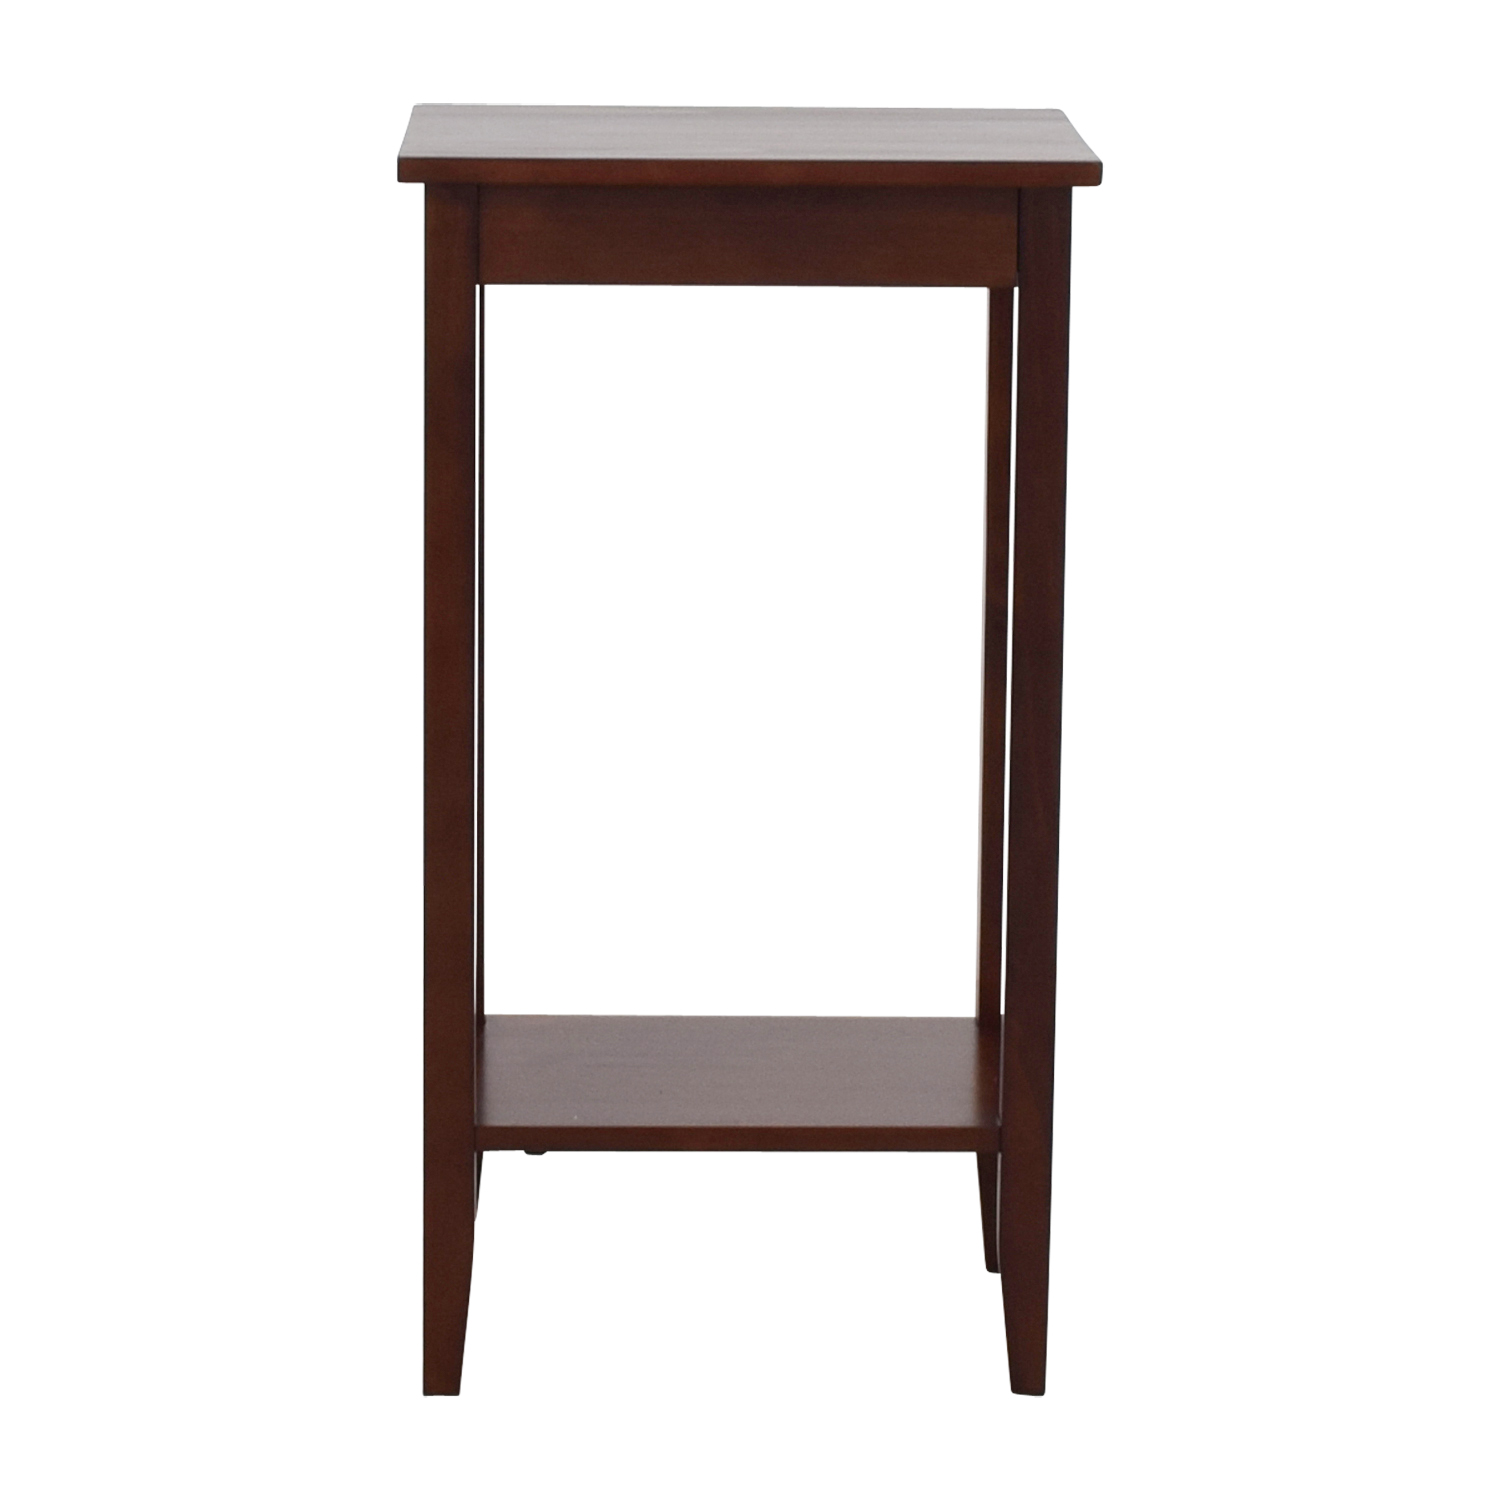 Tall Narrow Side Table price